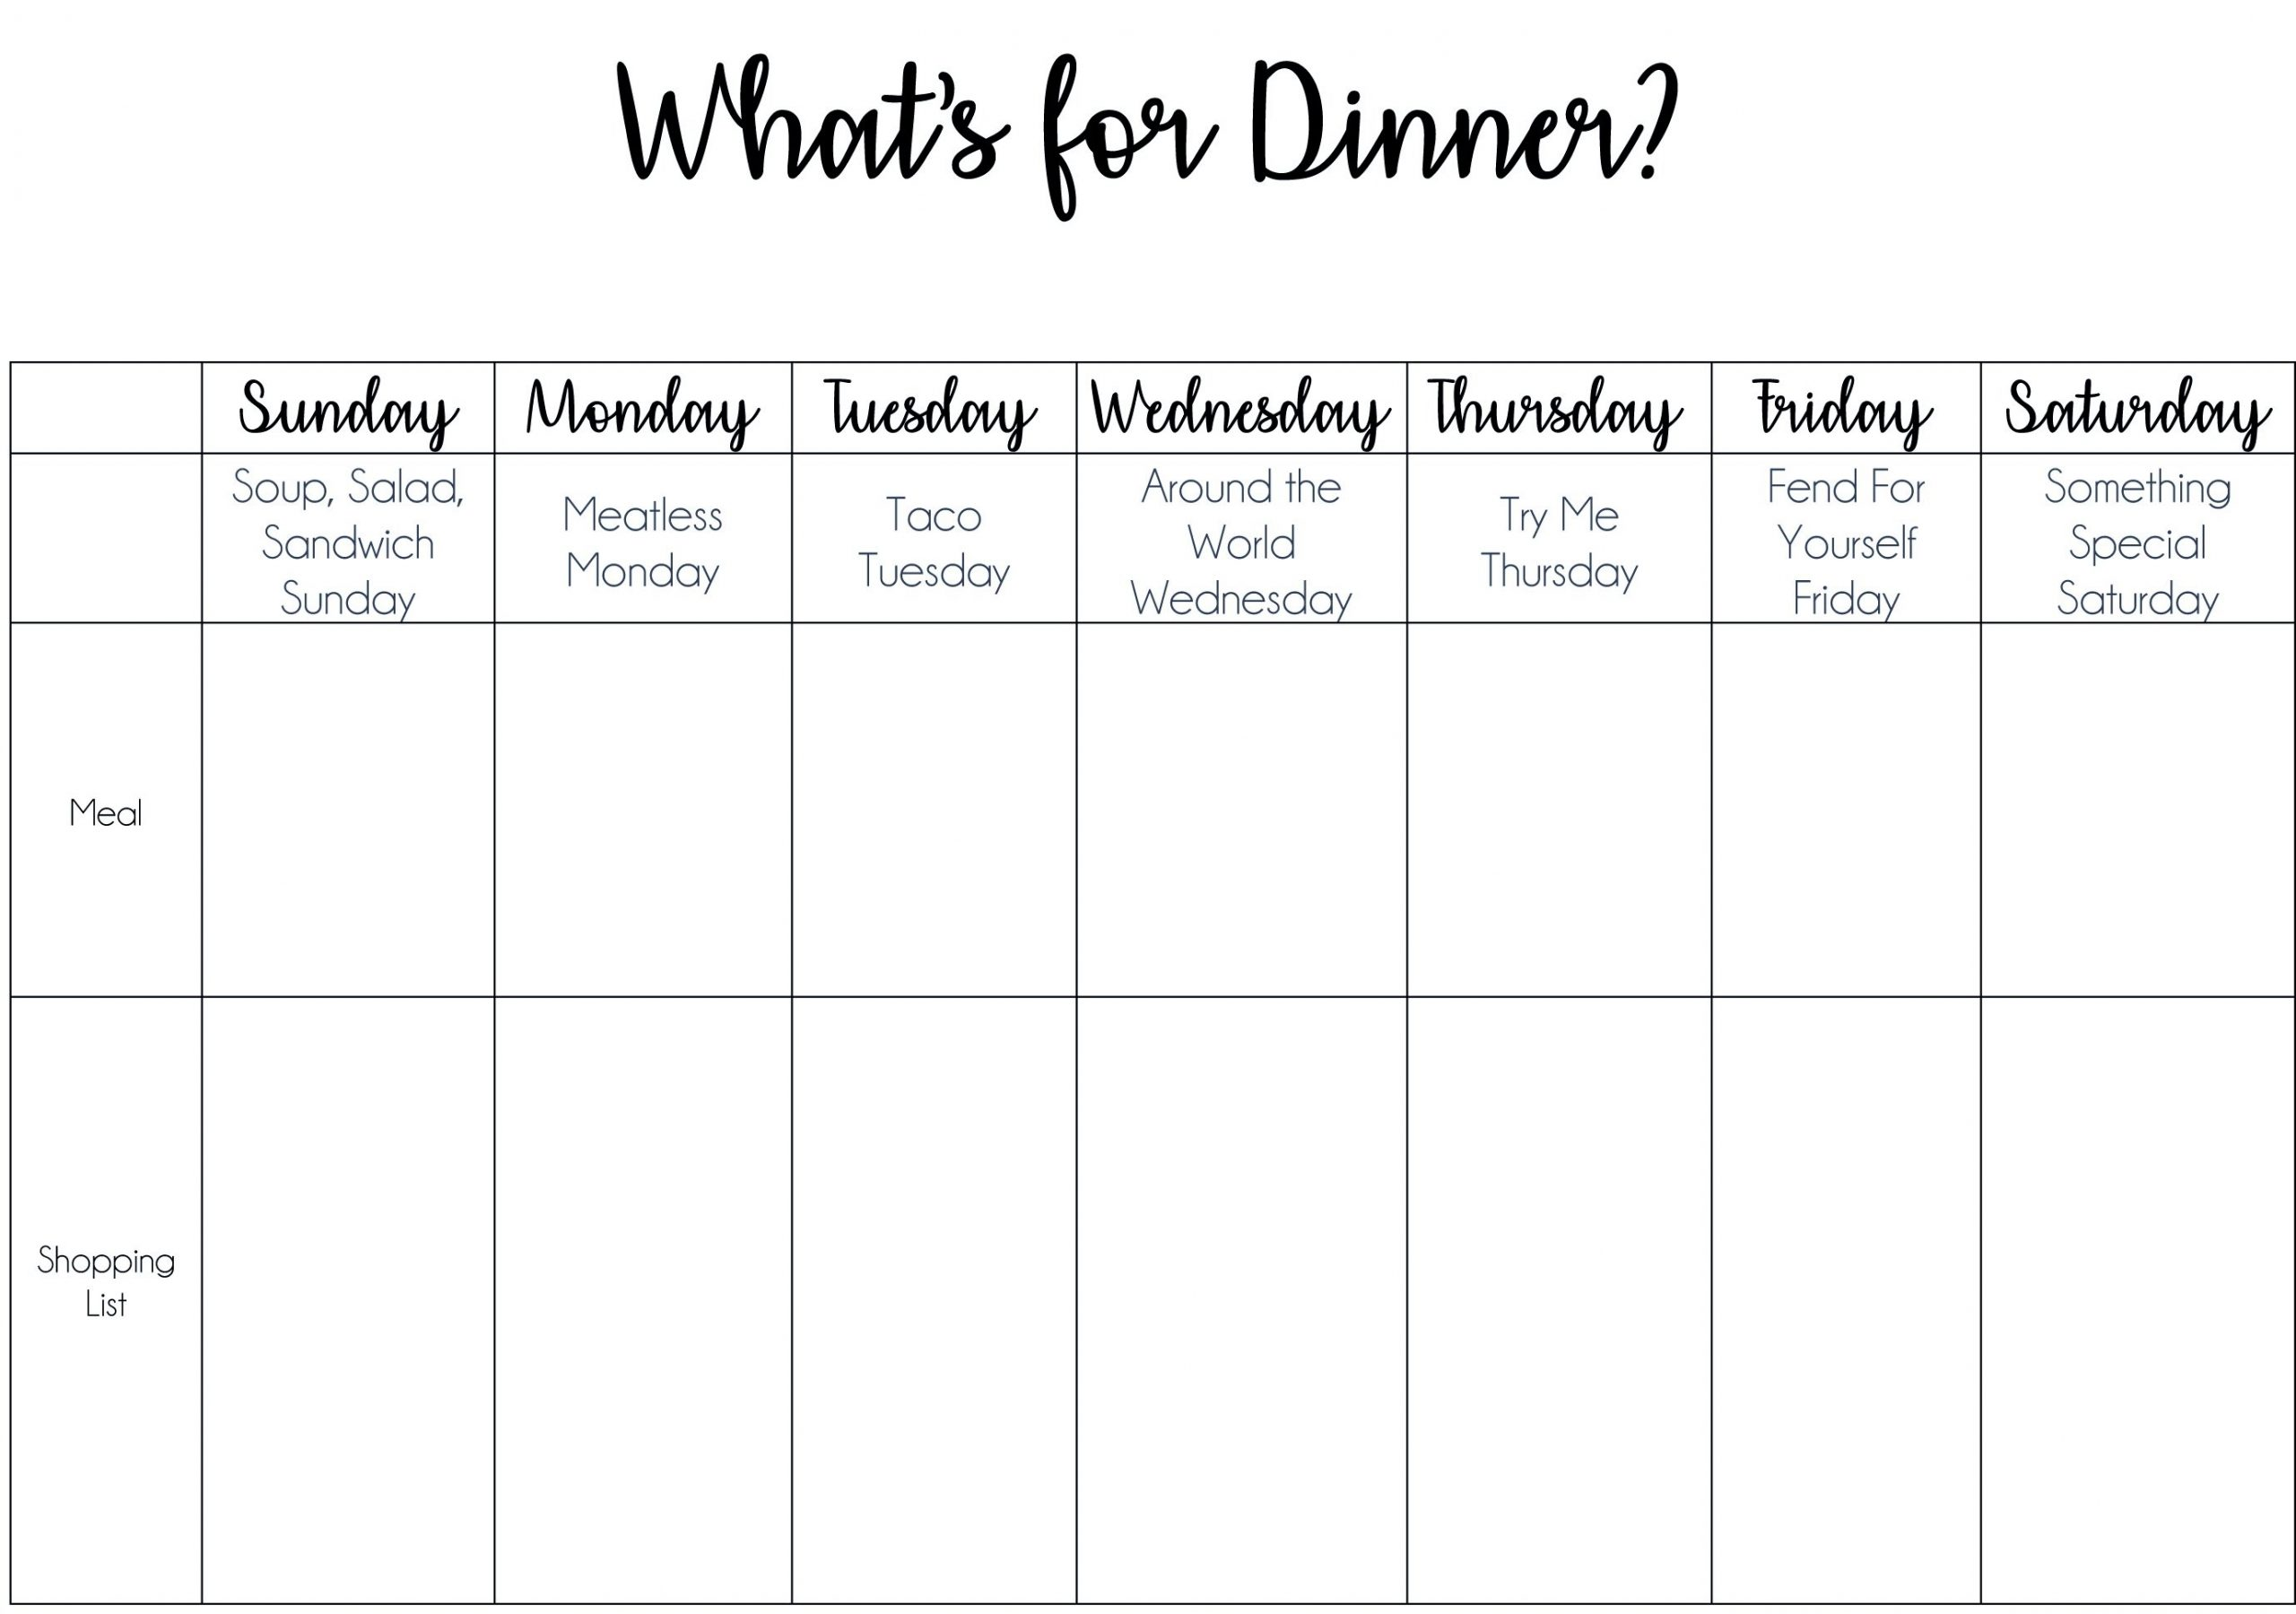 Dinner Made Easy With A Themed Meal-Planning Chart